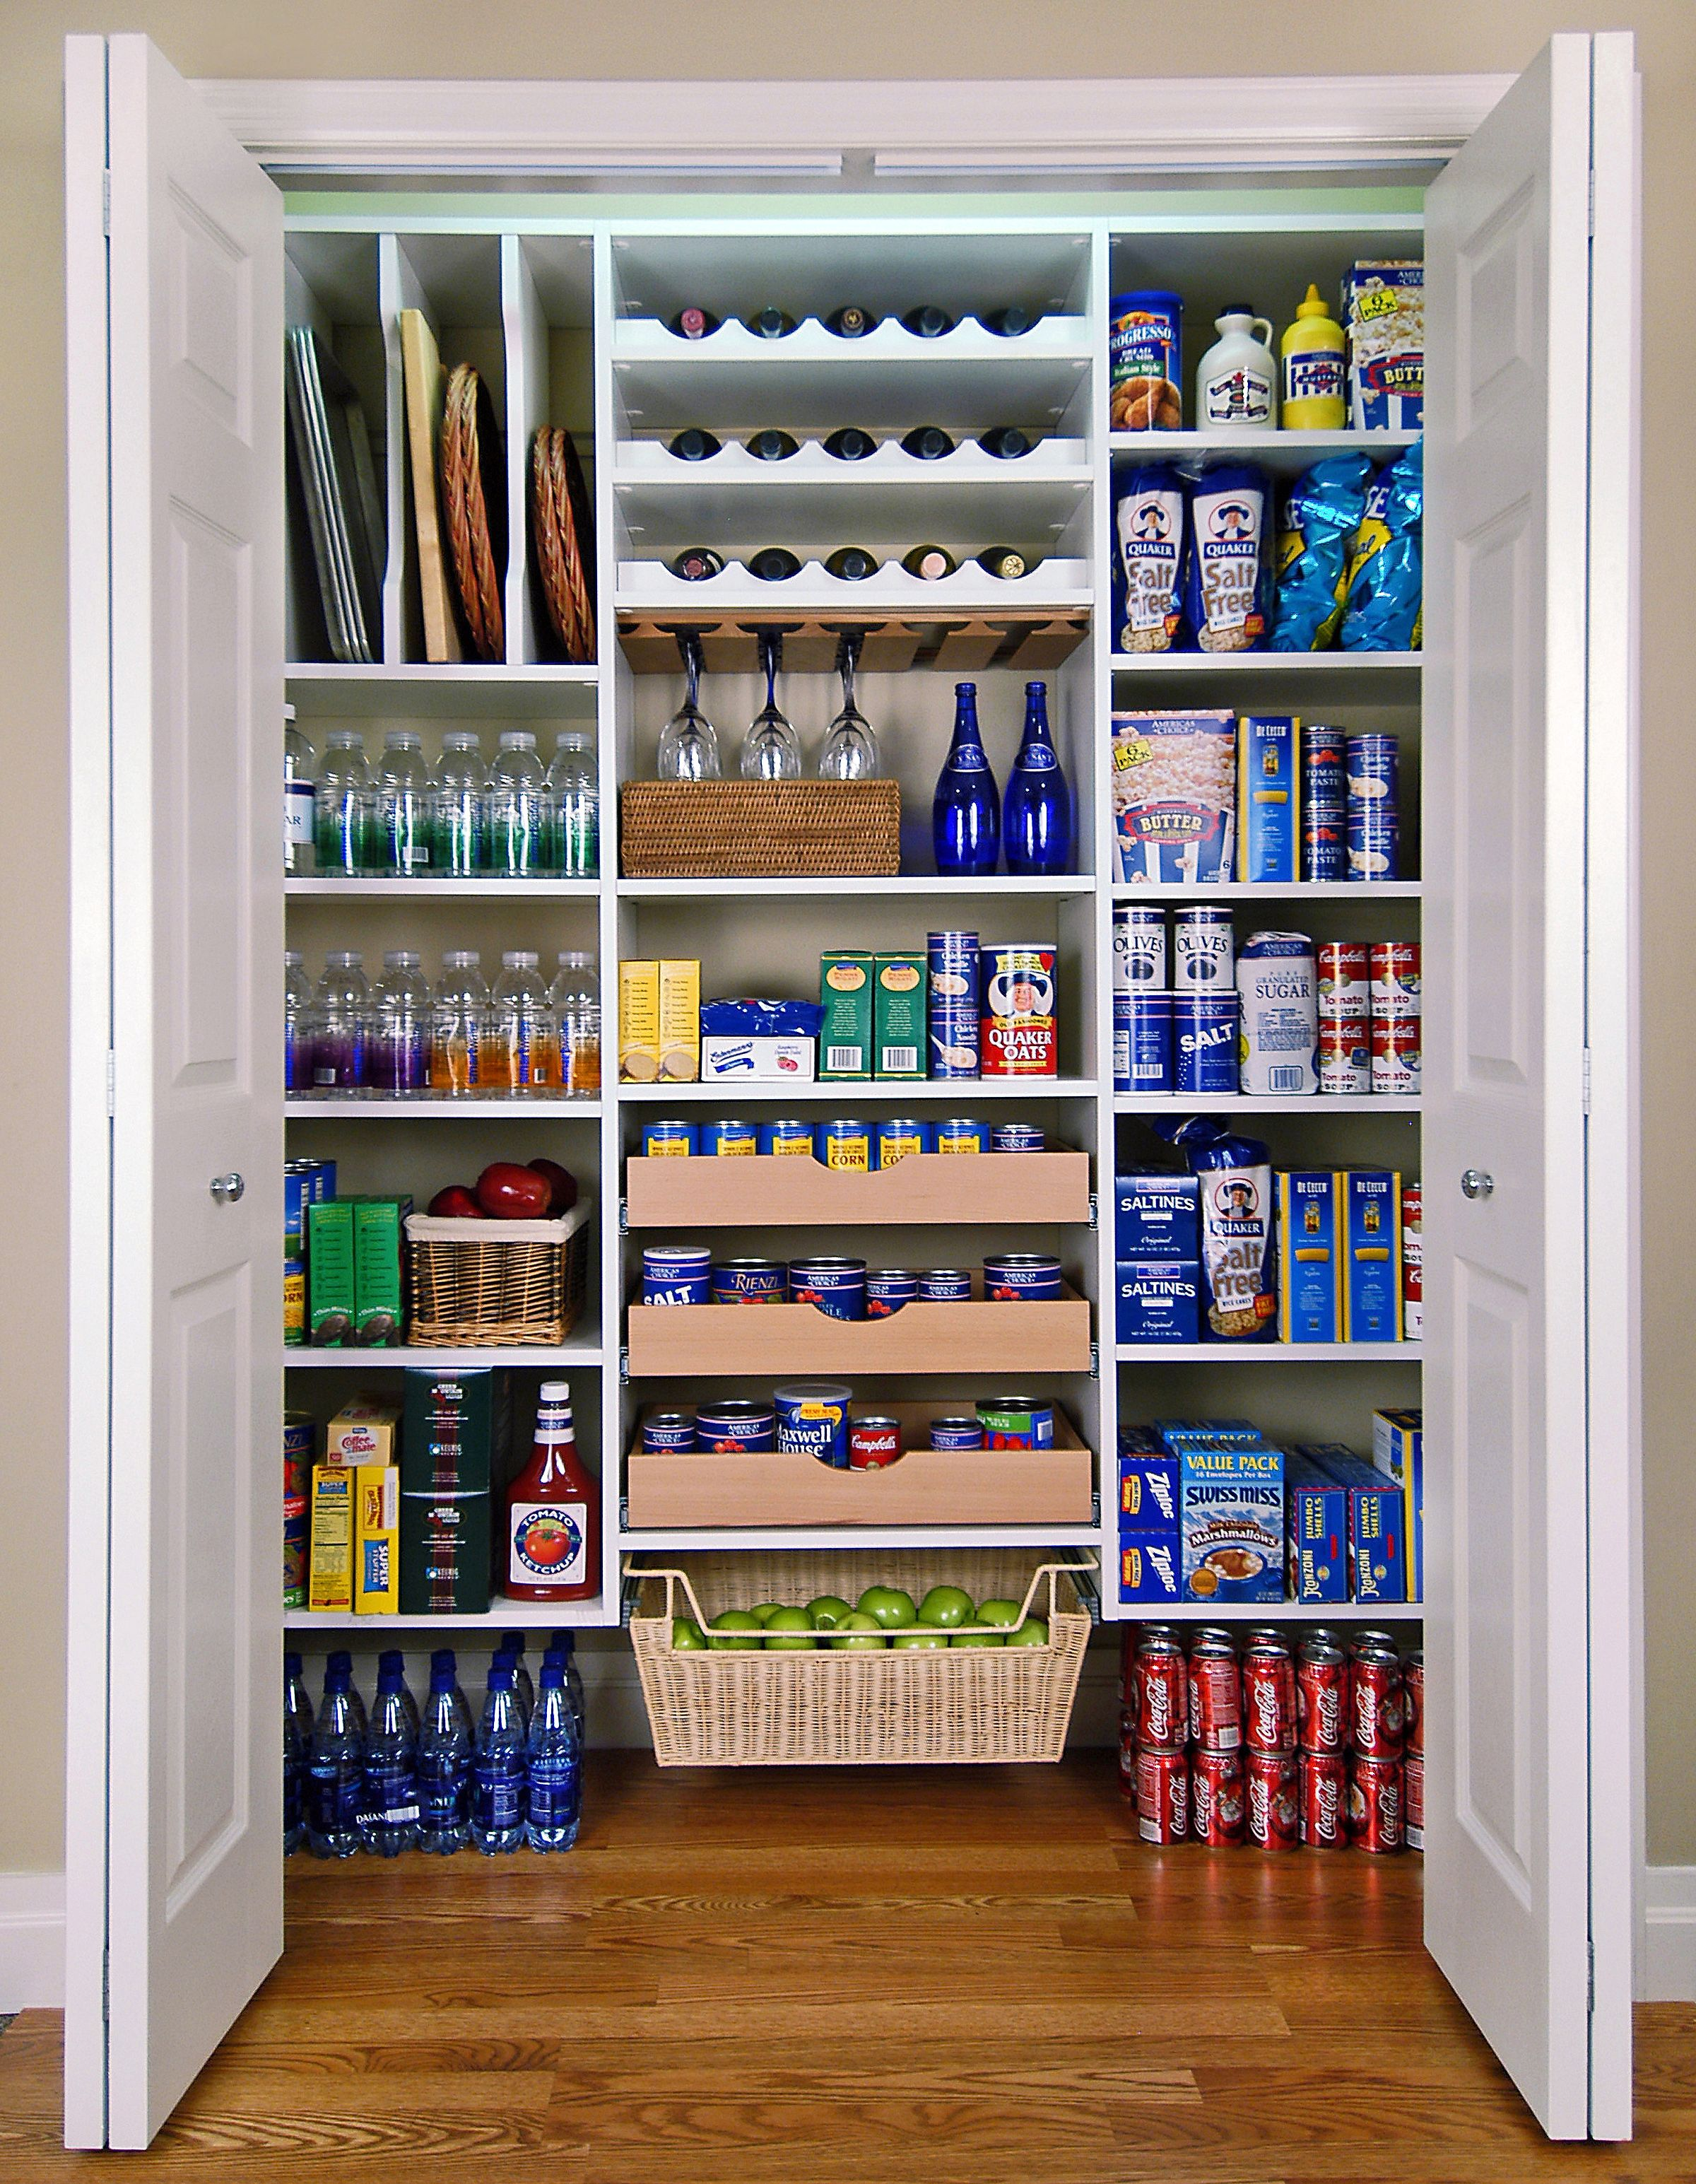 Pantry Makeover With Easy Custom DIY Shelving From Melamine 1x2 Pine